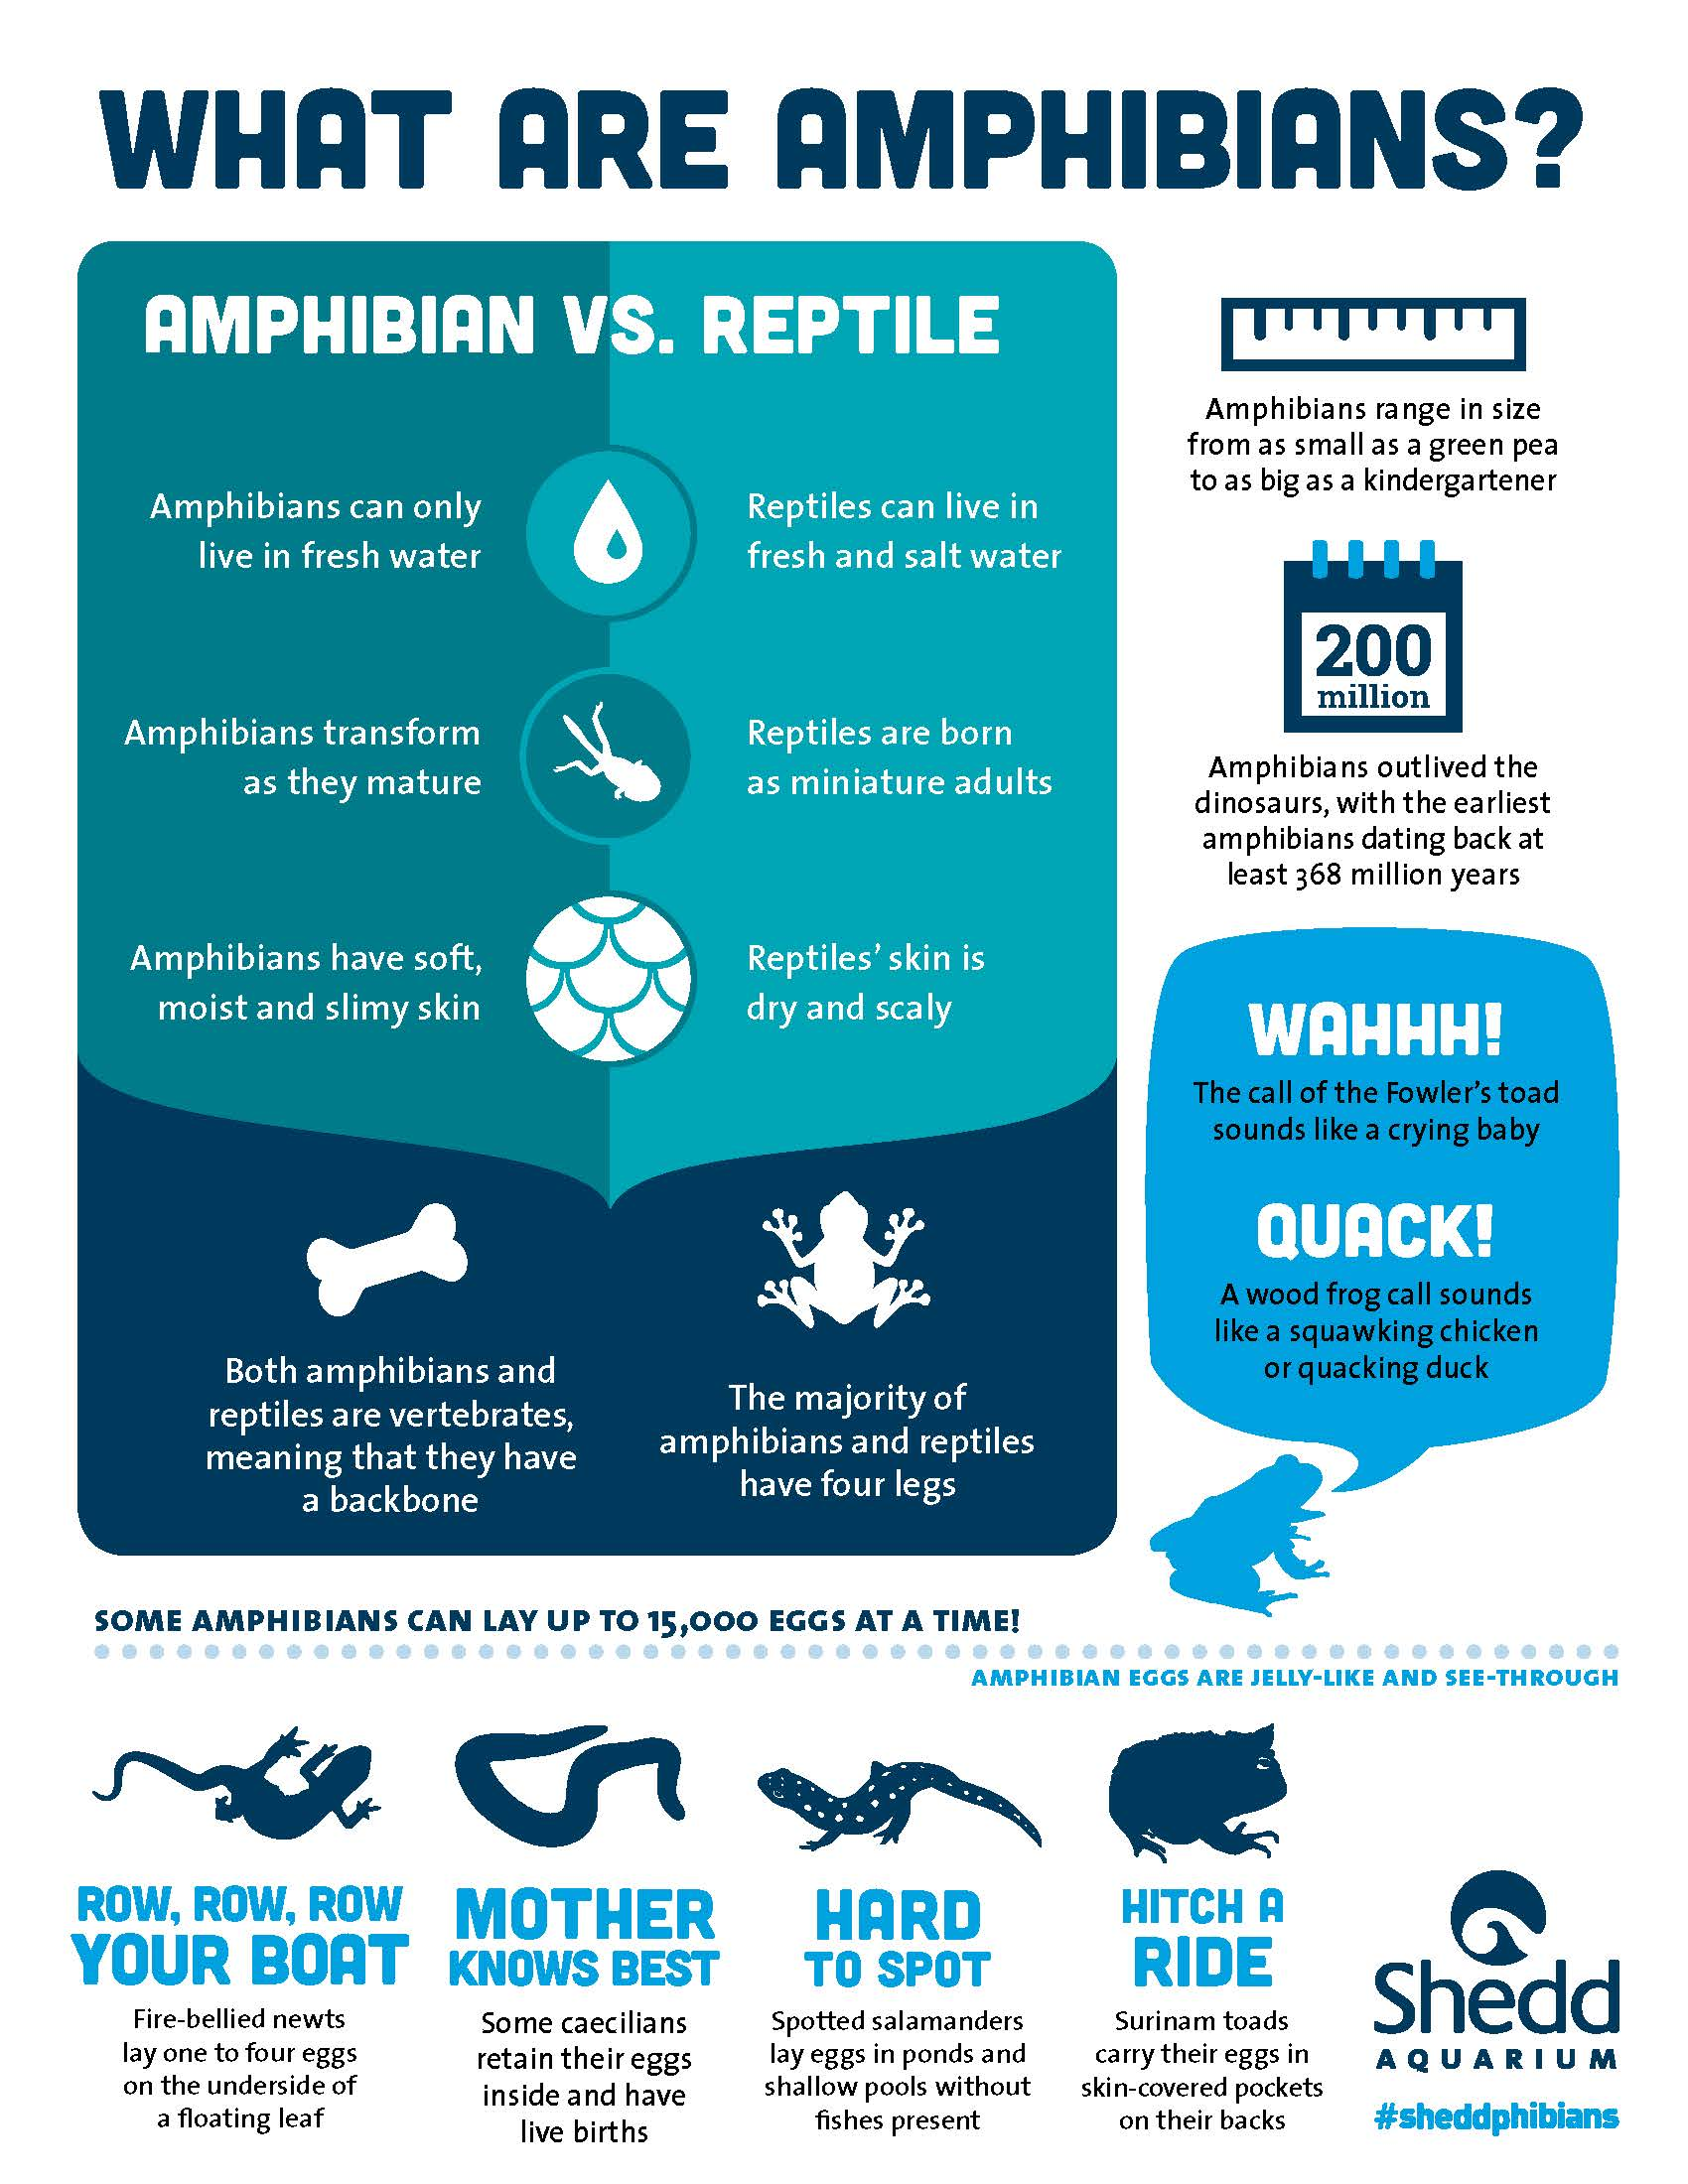 """An infographic page titled, """"What are amphibians?"""" A large section jus tbelow the title in light and dark teal reads 'Amphibian vs. reptile' and details three ways that amphibians and reptiles can be told apart. Other amphibian facts, accompanied by playful icons in dark blue and vivid cyan, fill up the margins of the page."""